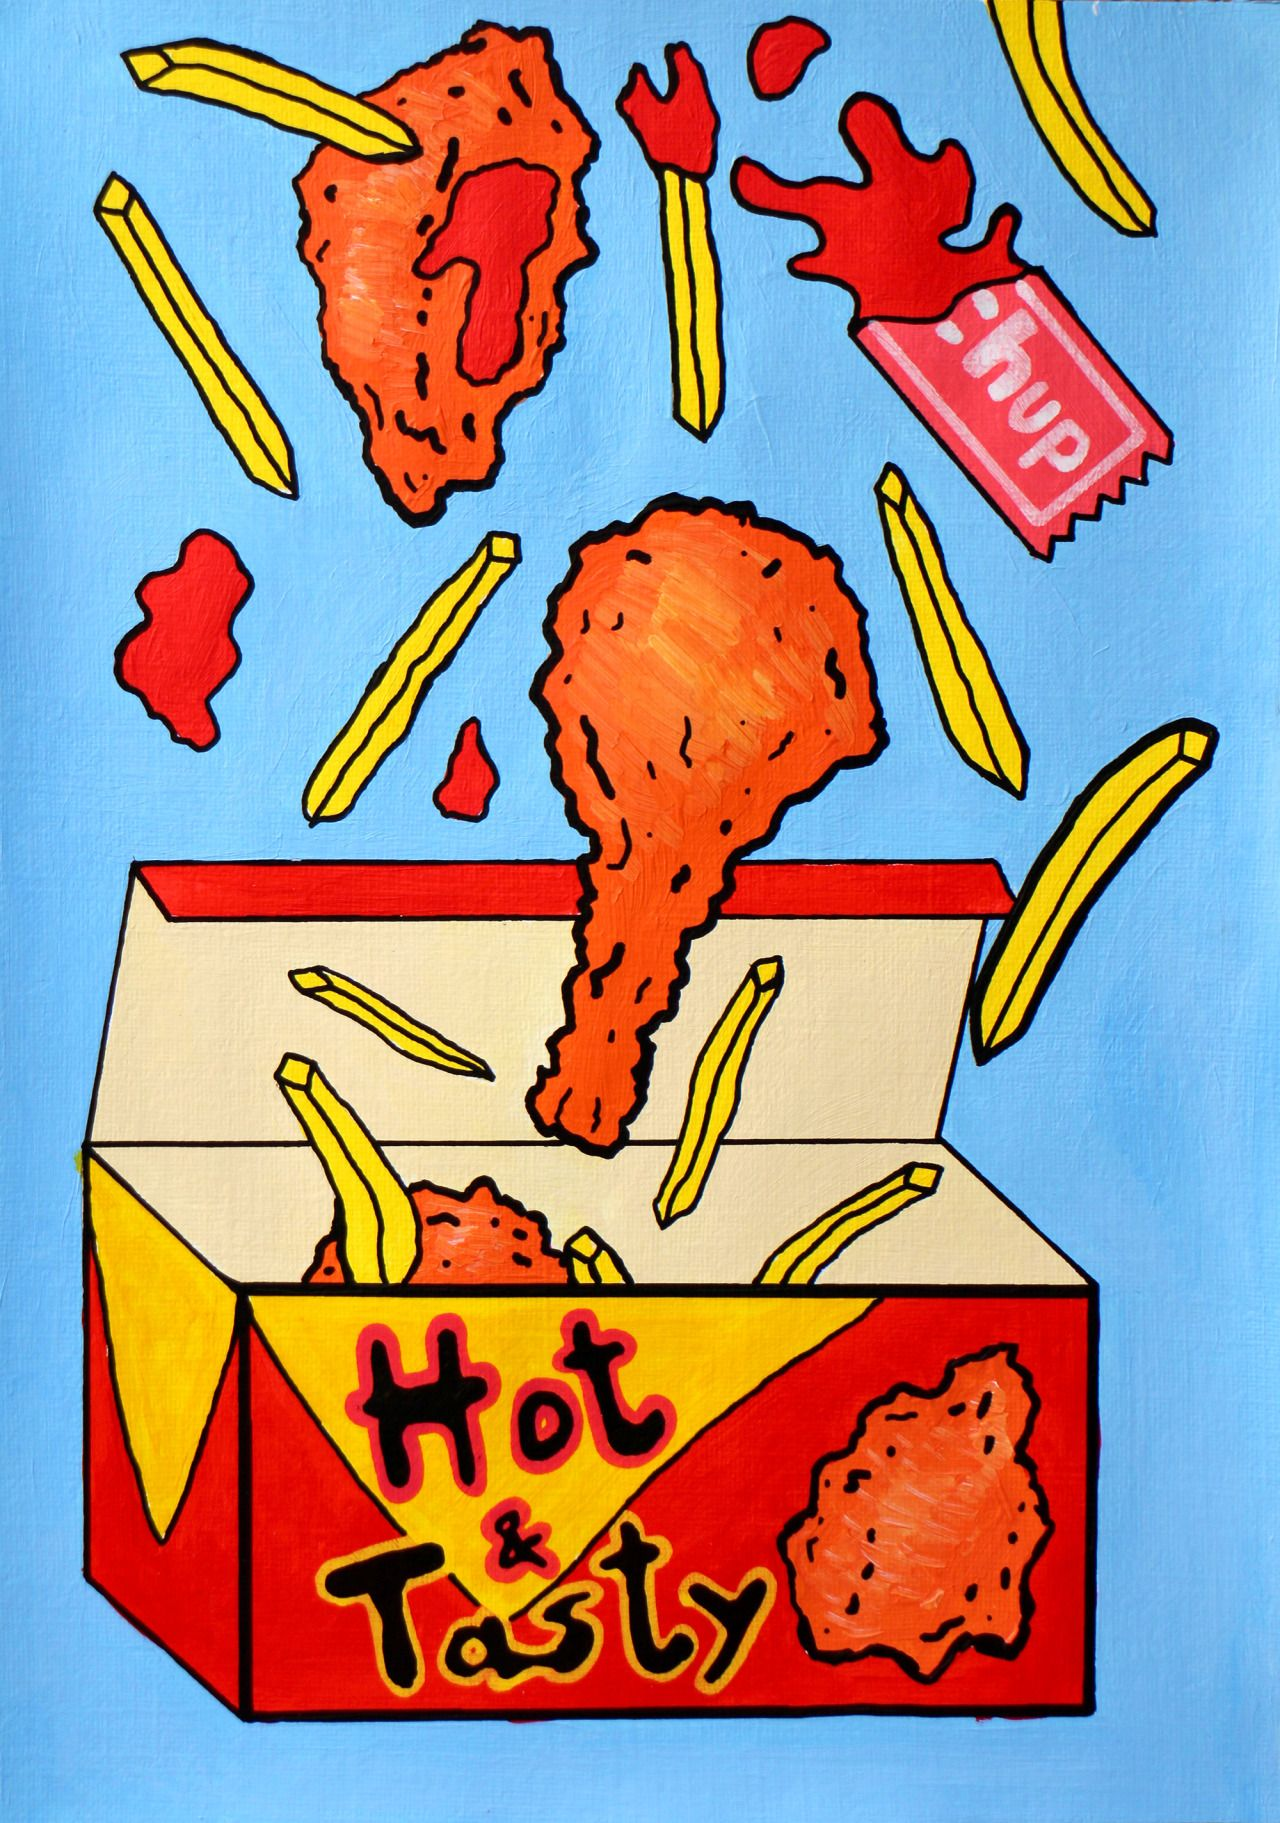 A4 Acrylic Pop Art Food Painting Of A Standard Fried